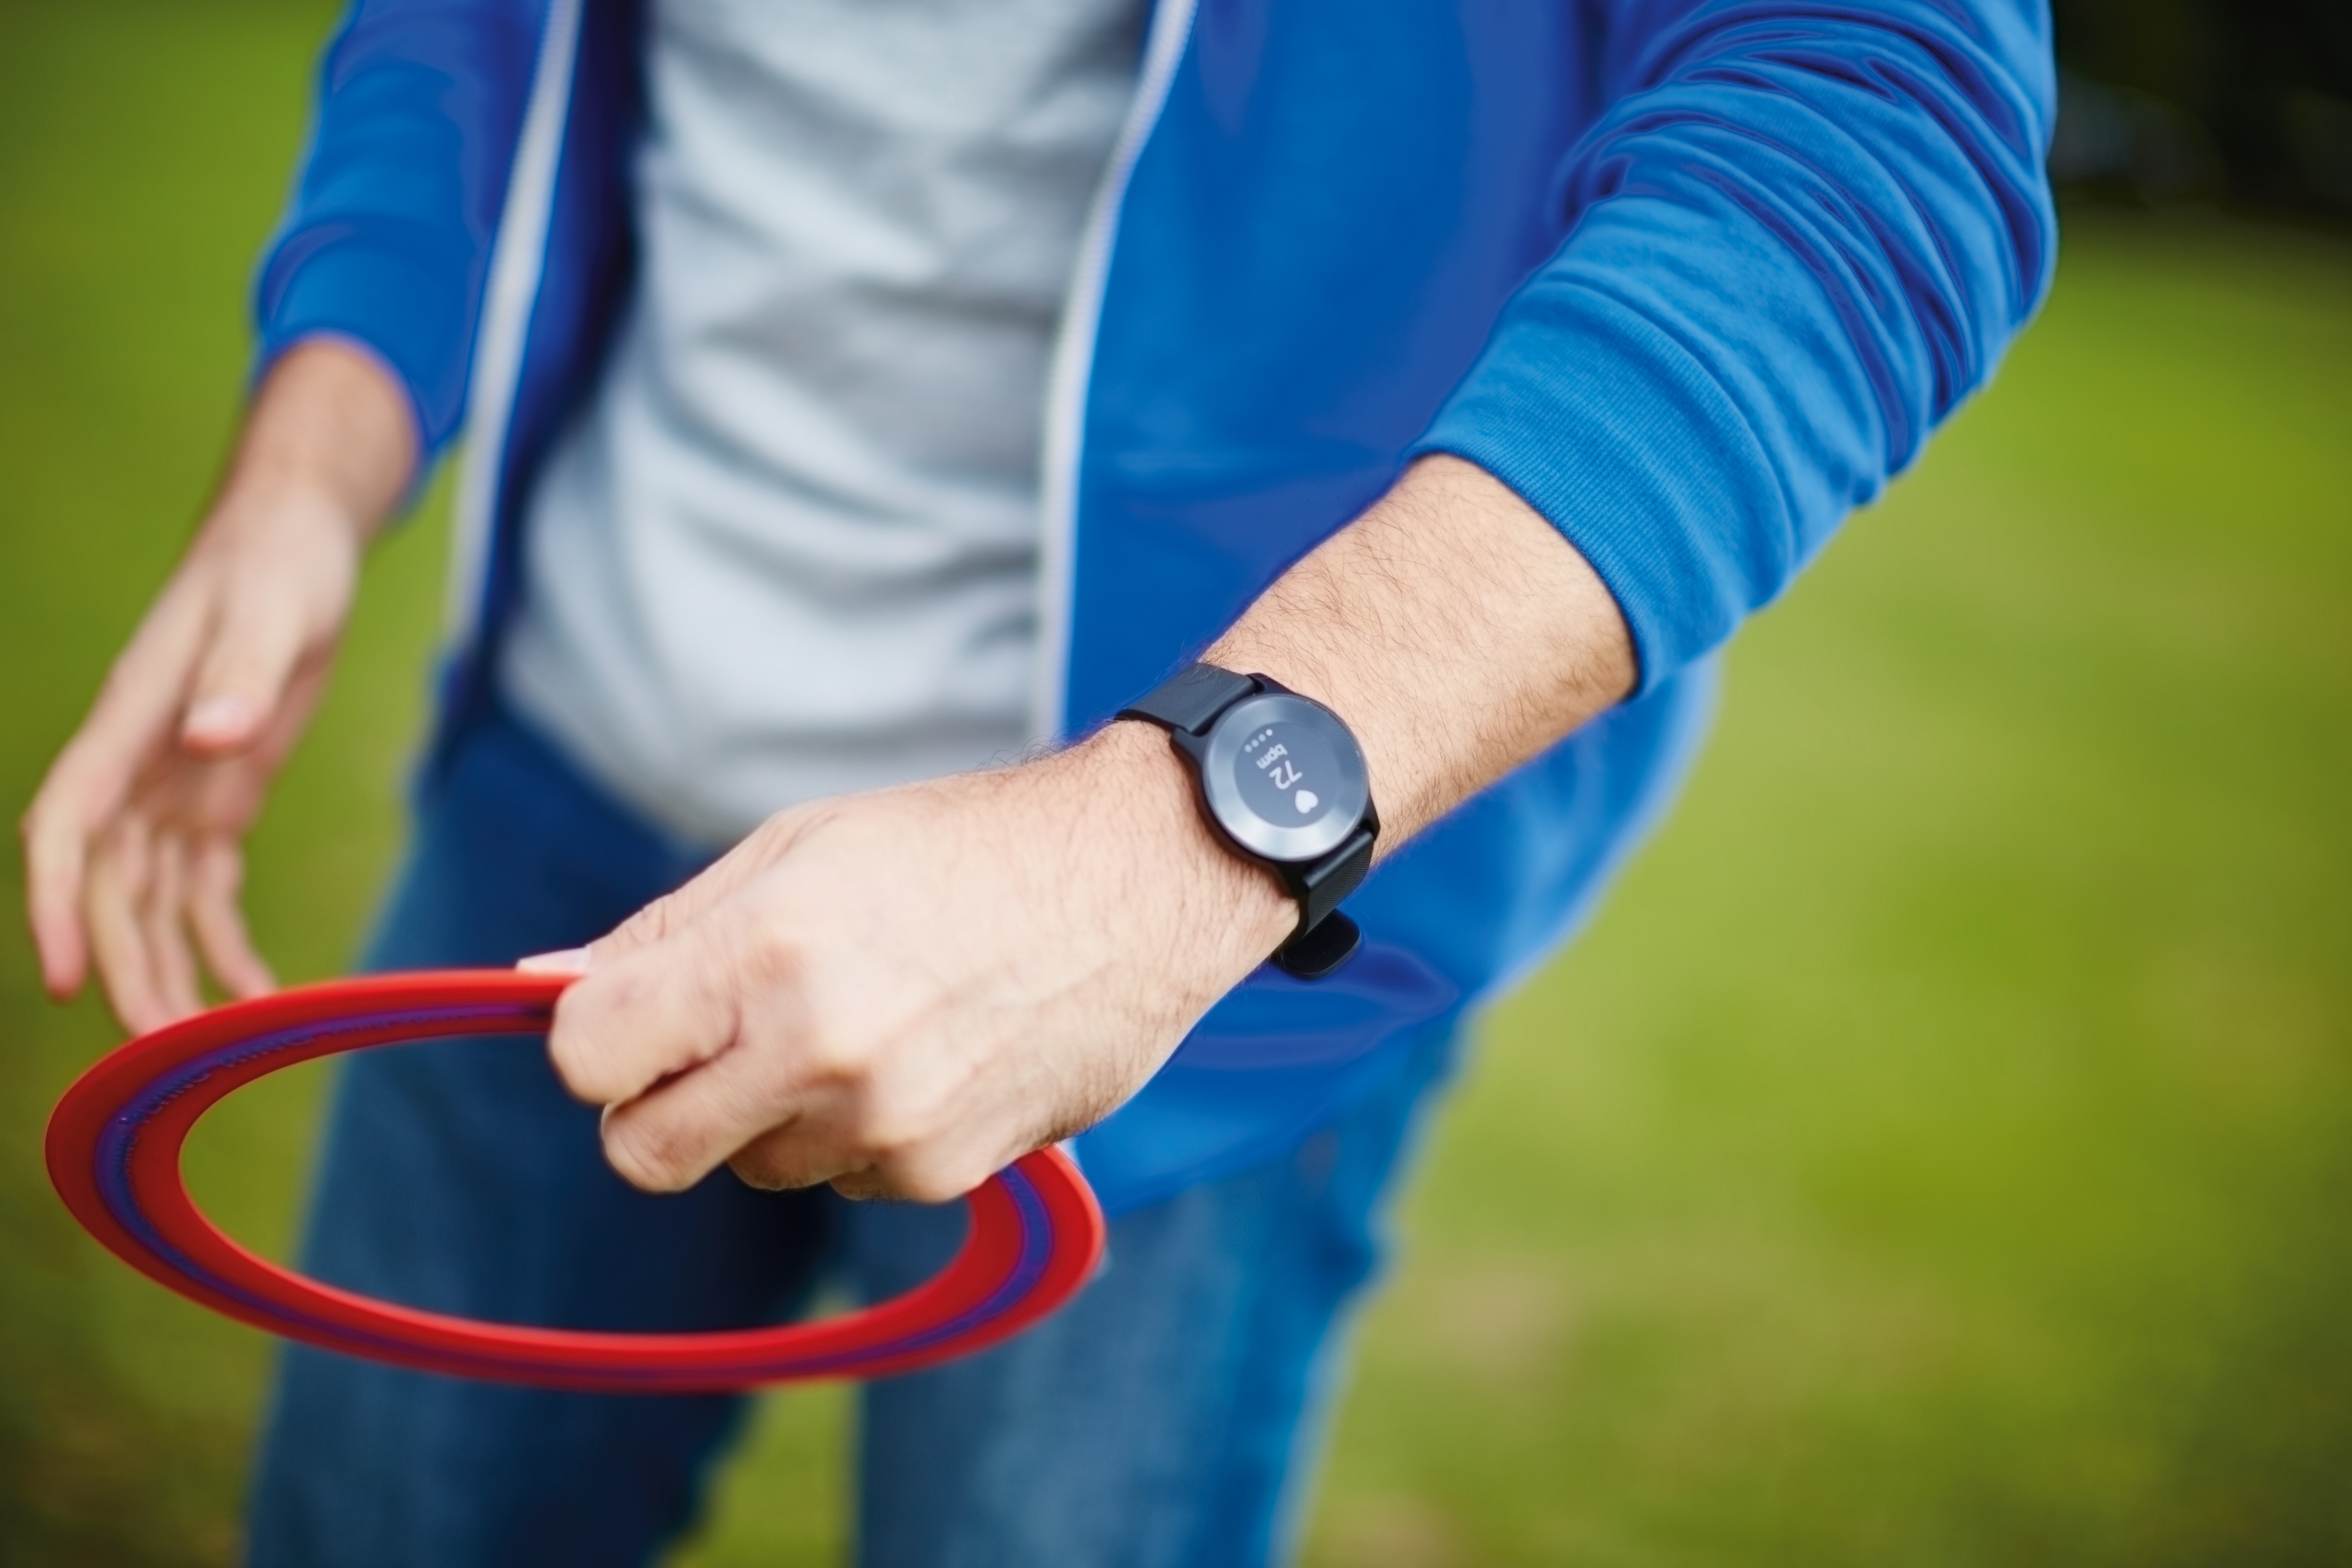 Report: Global market for connected wearables, health devices expected to reach $612B by 2024